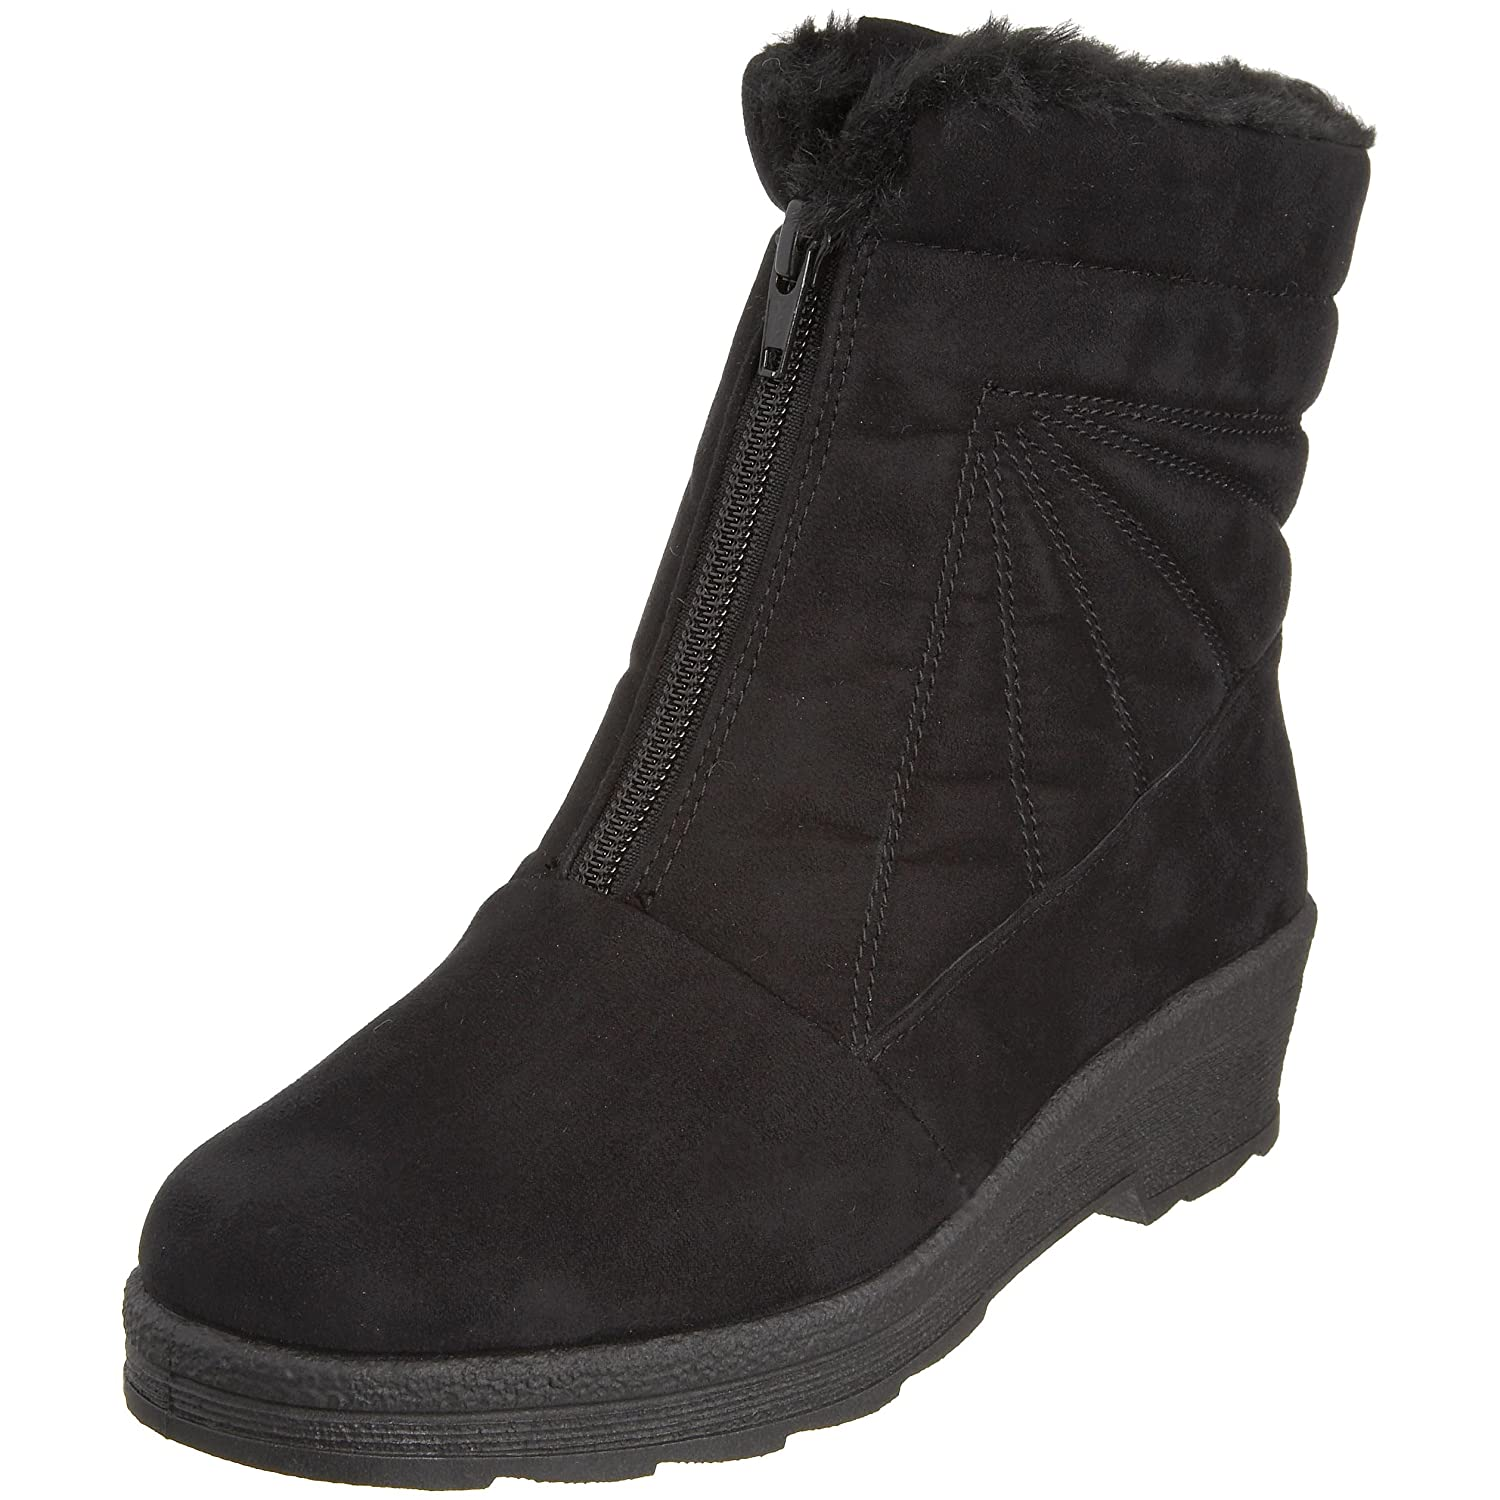 Rohde Rohde 287090, V.6) Bottes femme (Noir Noir (Noir - V.6) 98b10d5 - fast-weightloss-diet.space